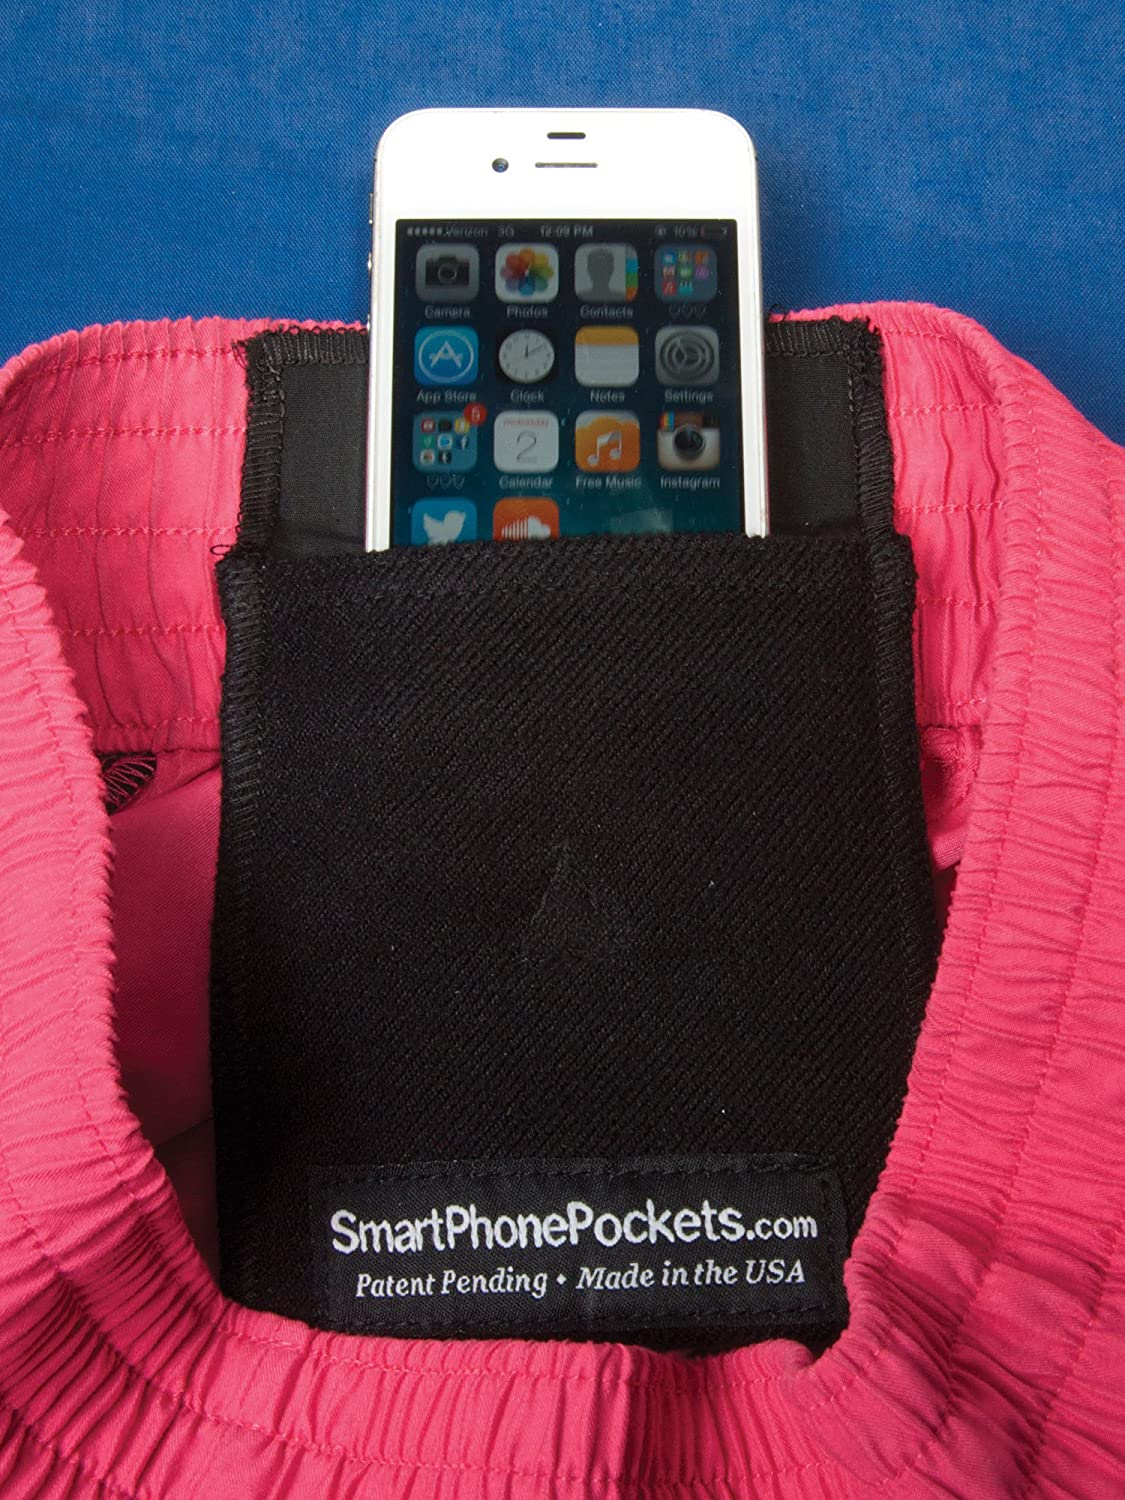 Smartphone Pockets 3 Pack Cell Phones Accessories Golf Wiring Schematicit Shortsi Put The Positive Battery Cable On